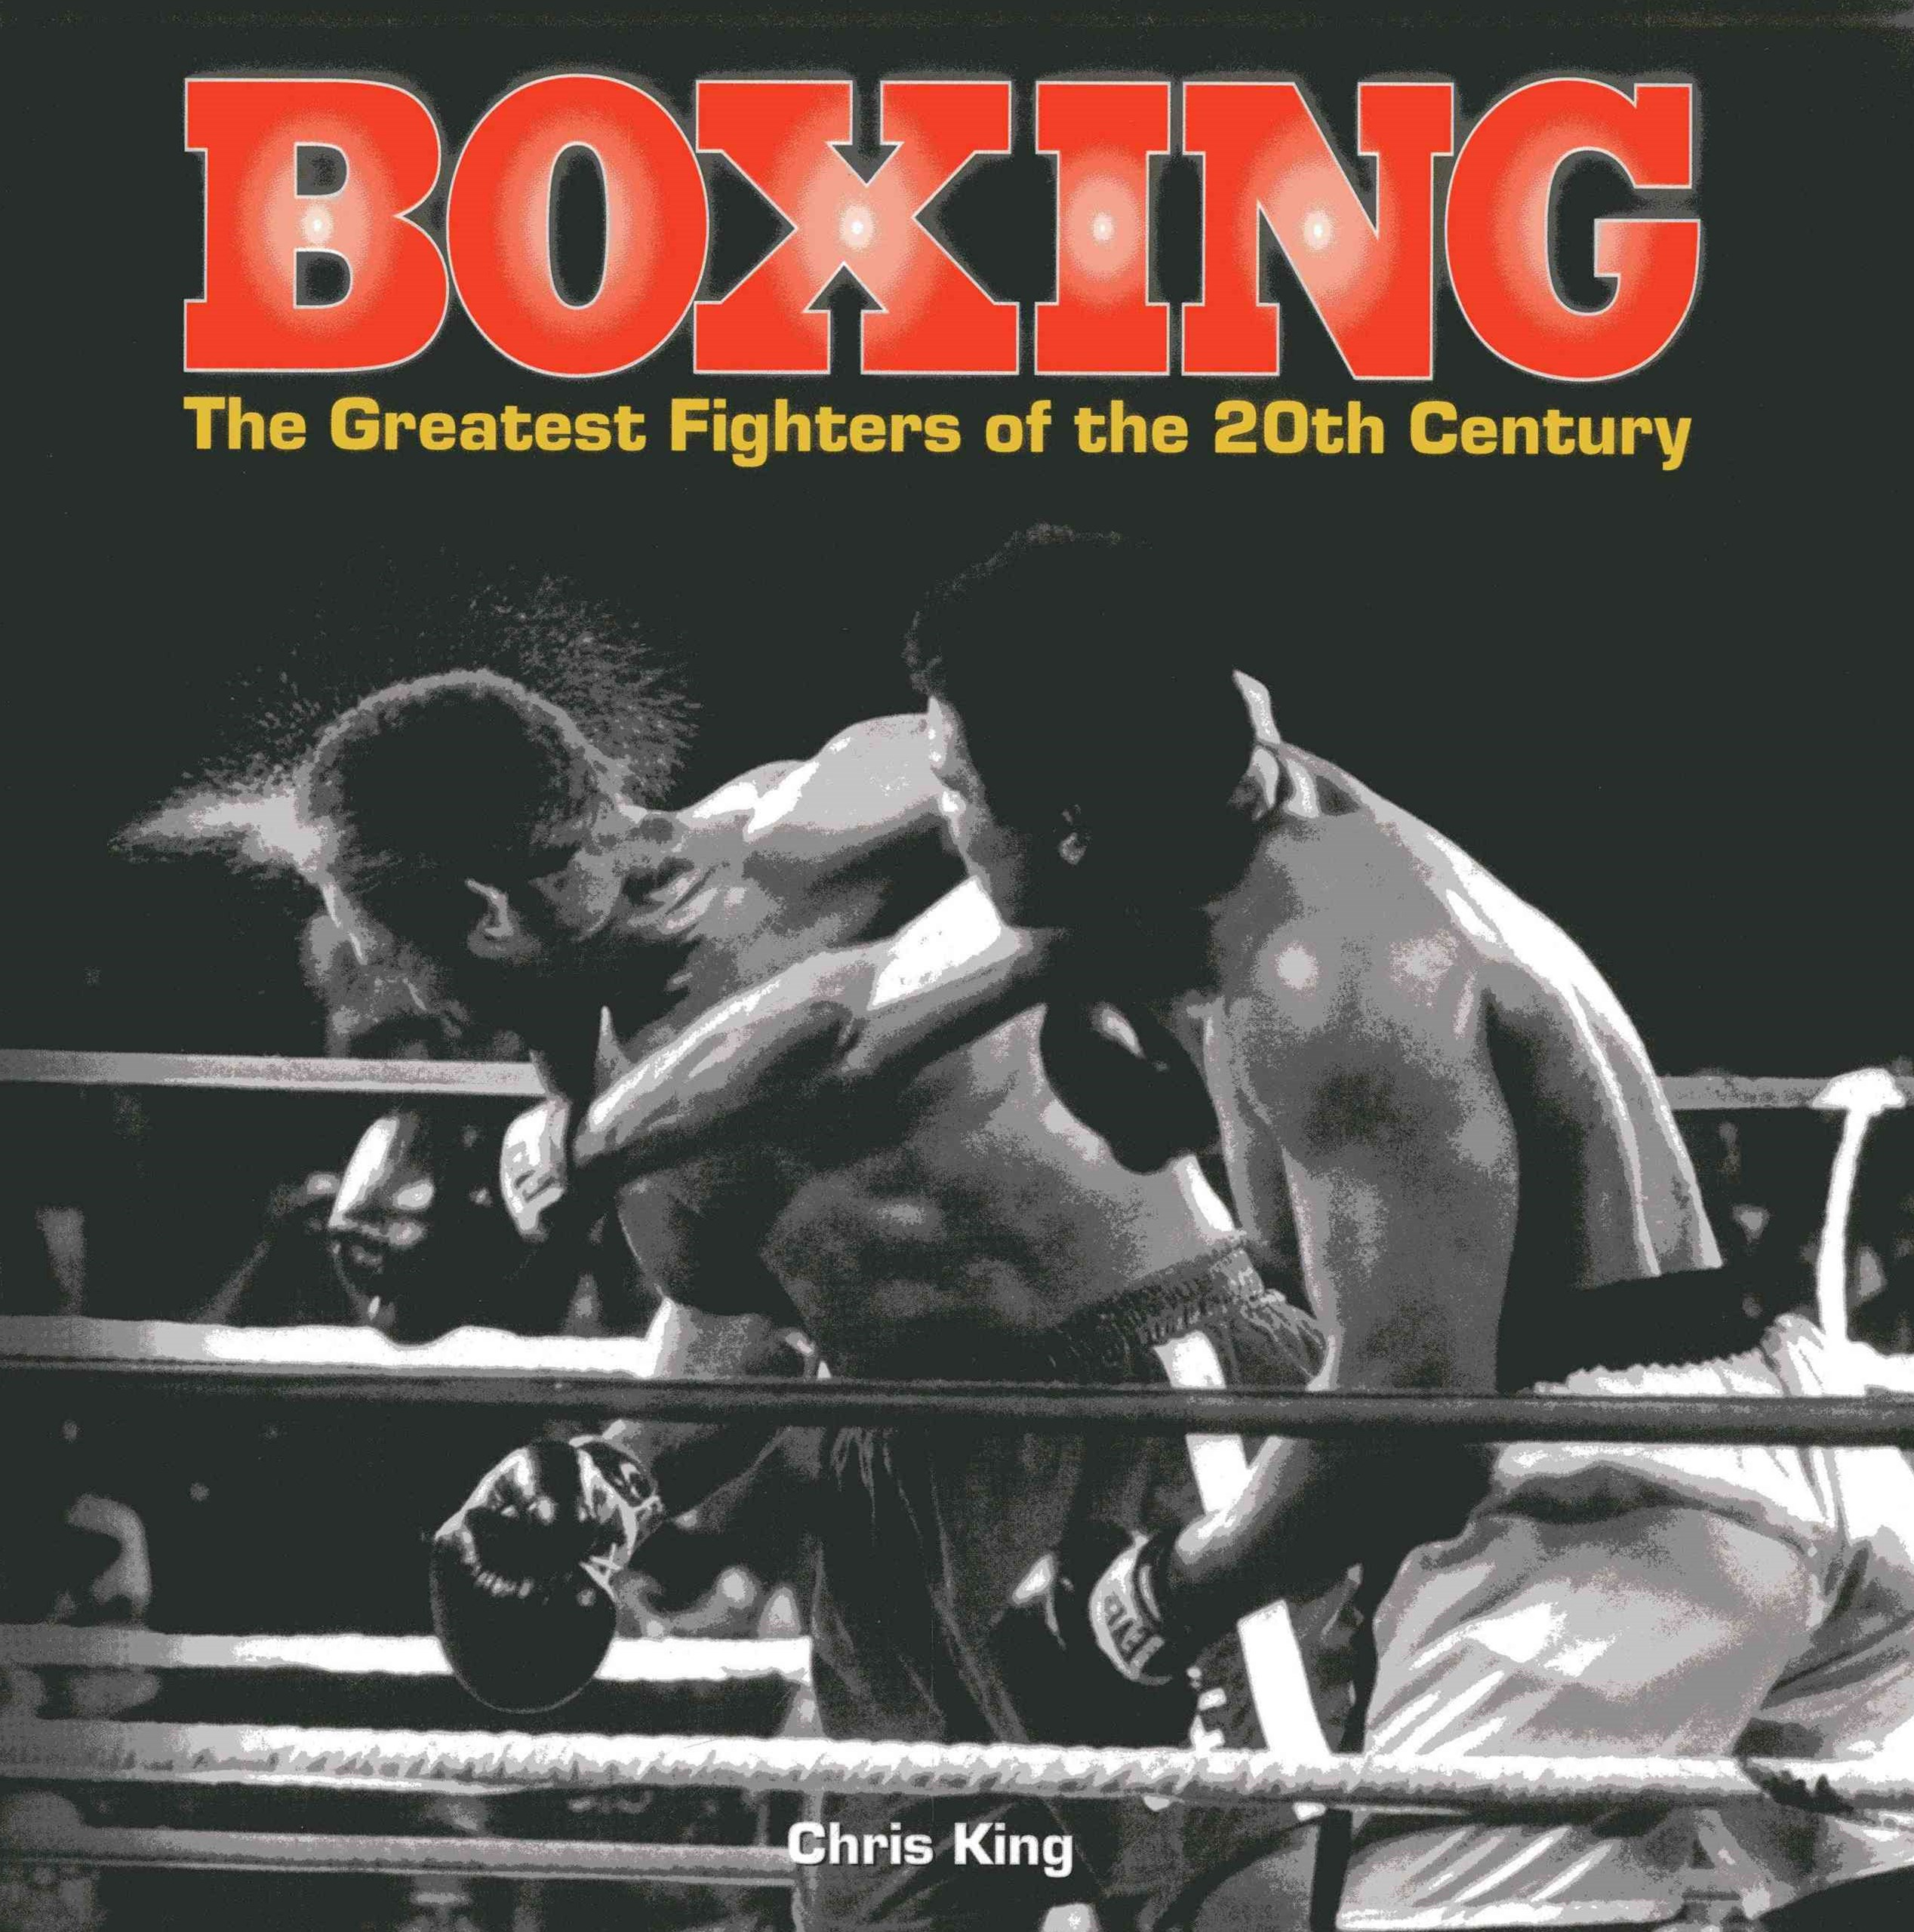 Boxing: The Greatest Fighters of the 20th Century